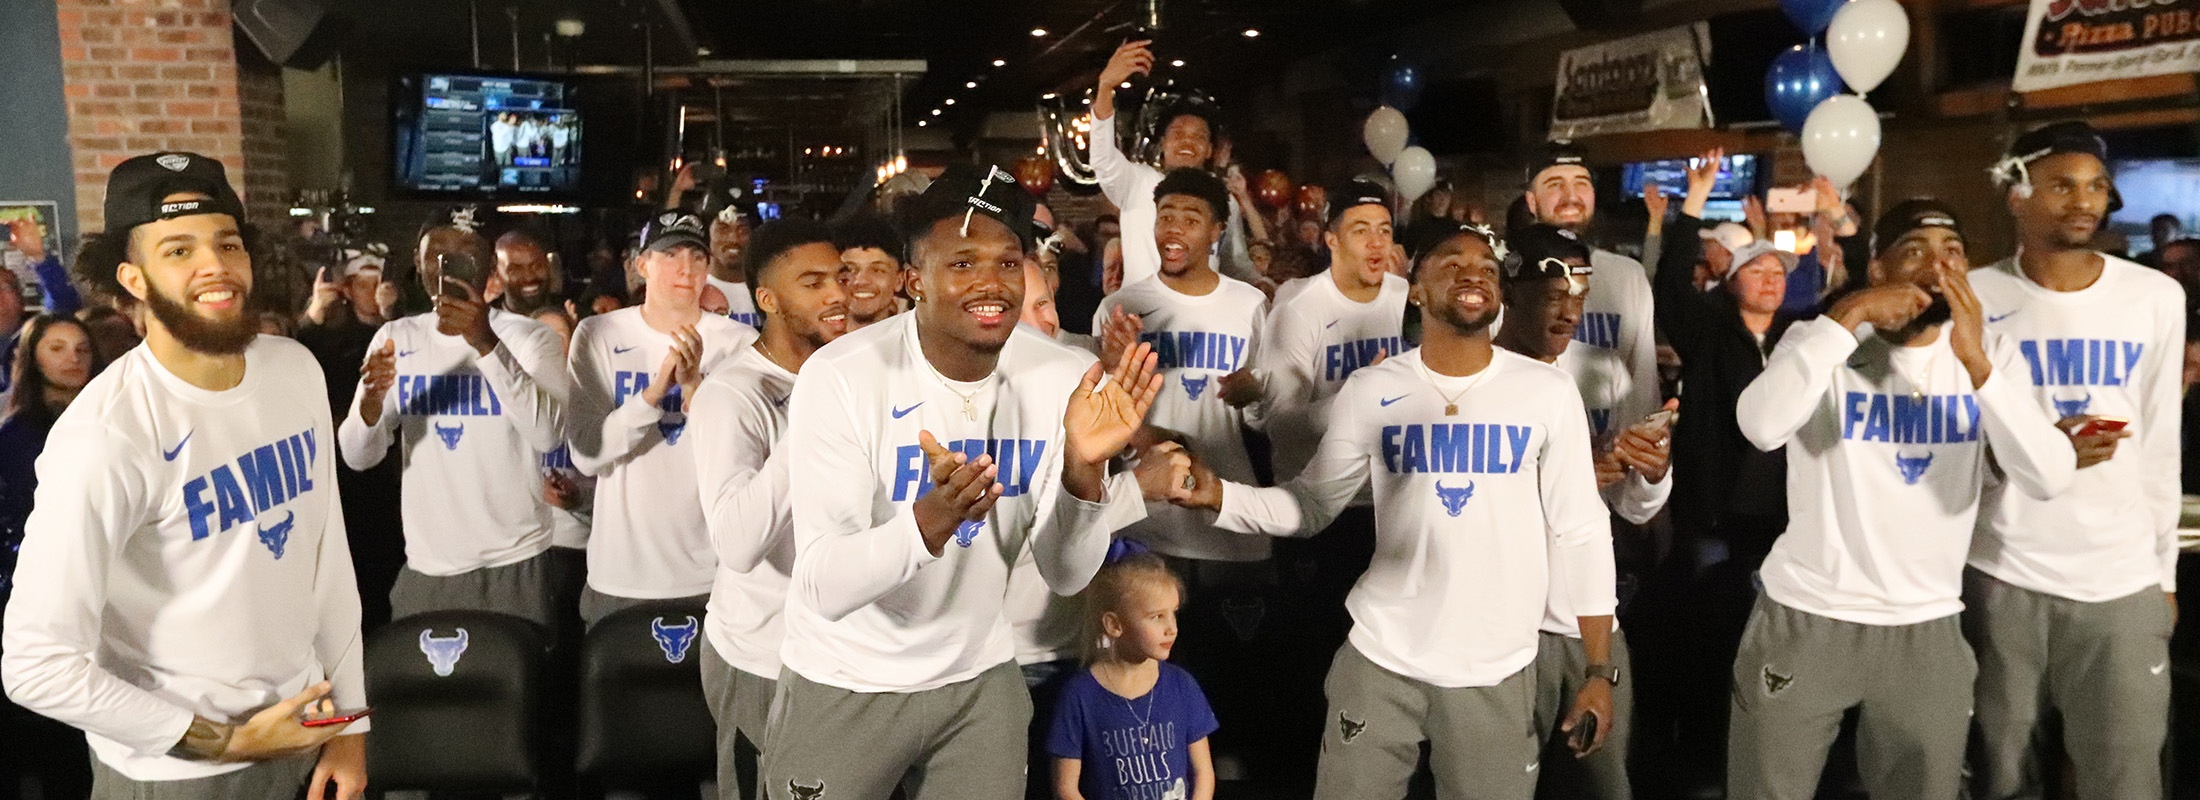 The Buffalo men's basketball team celebrates after learning their NCAA destination (James P. McCoy/Buffalo News)